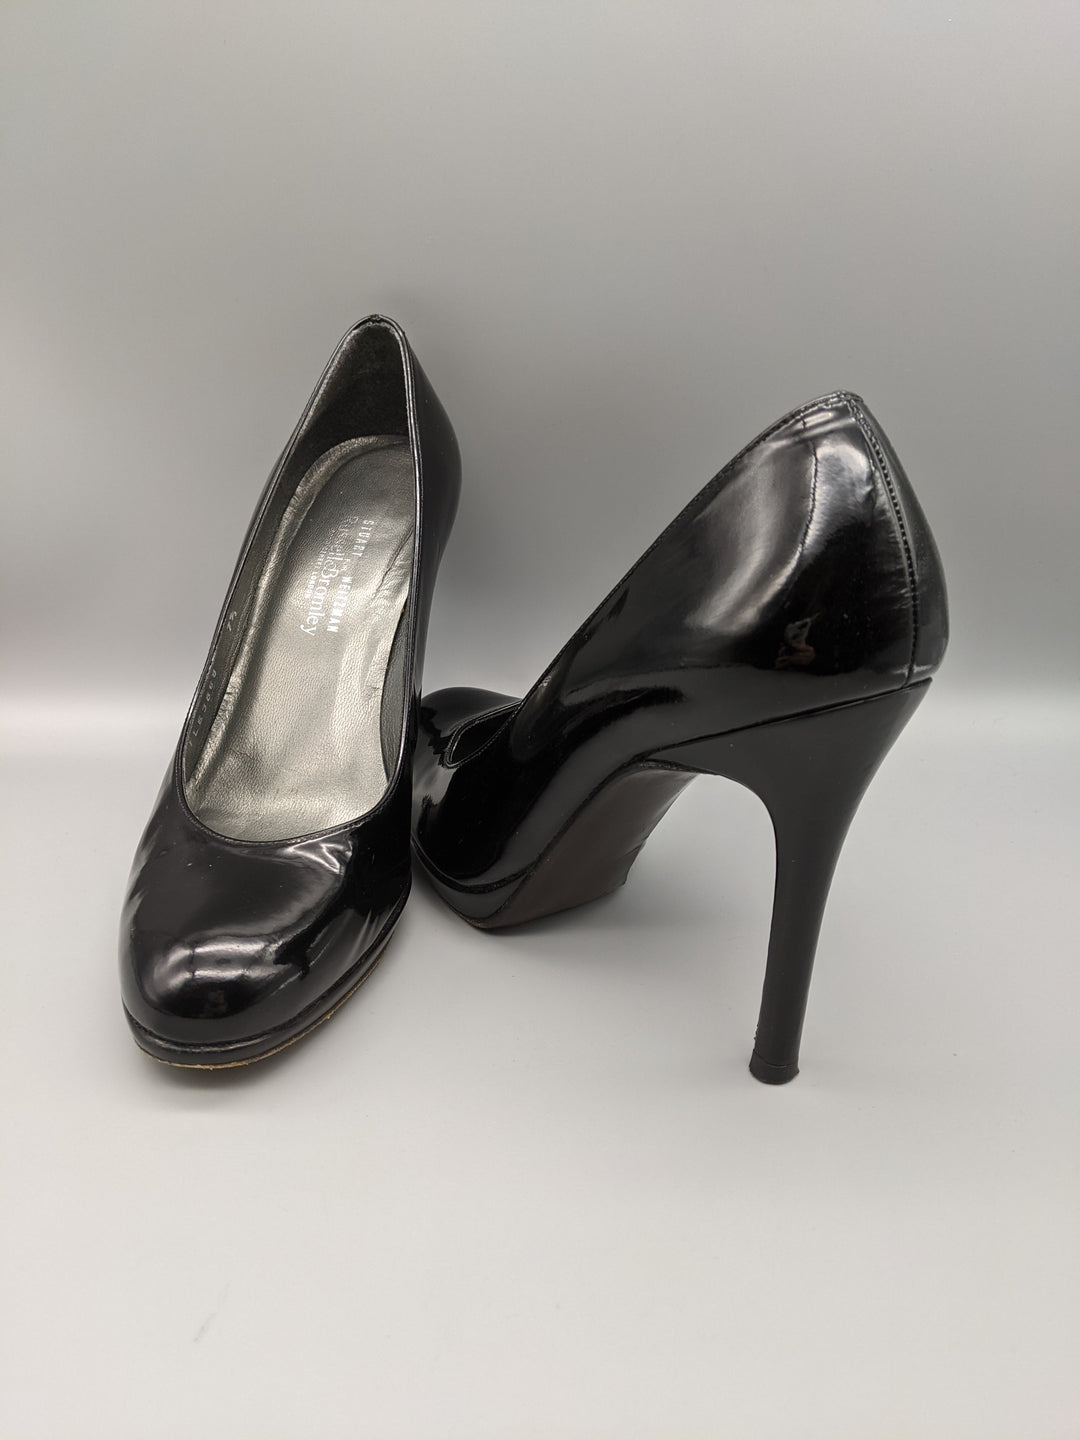 Primary Photo - BRAND: STUART WEITZMAN <BR>STYLE: SHOES HIGH HEEL <BR>COLOR: BLACK <BR>SIZE: 7.5 <BR>OTHER INFO: RUSSEL AND BROMLEY ** <BR>SKU: 115-115314-9670